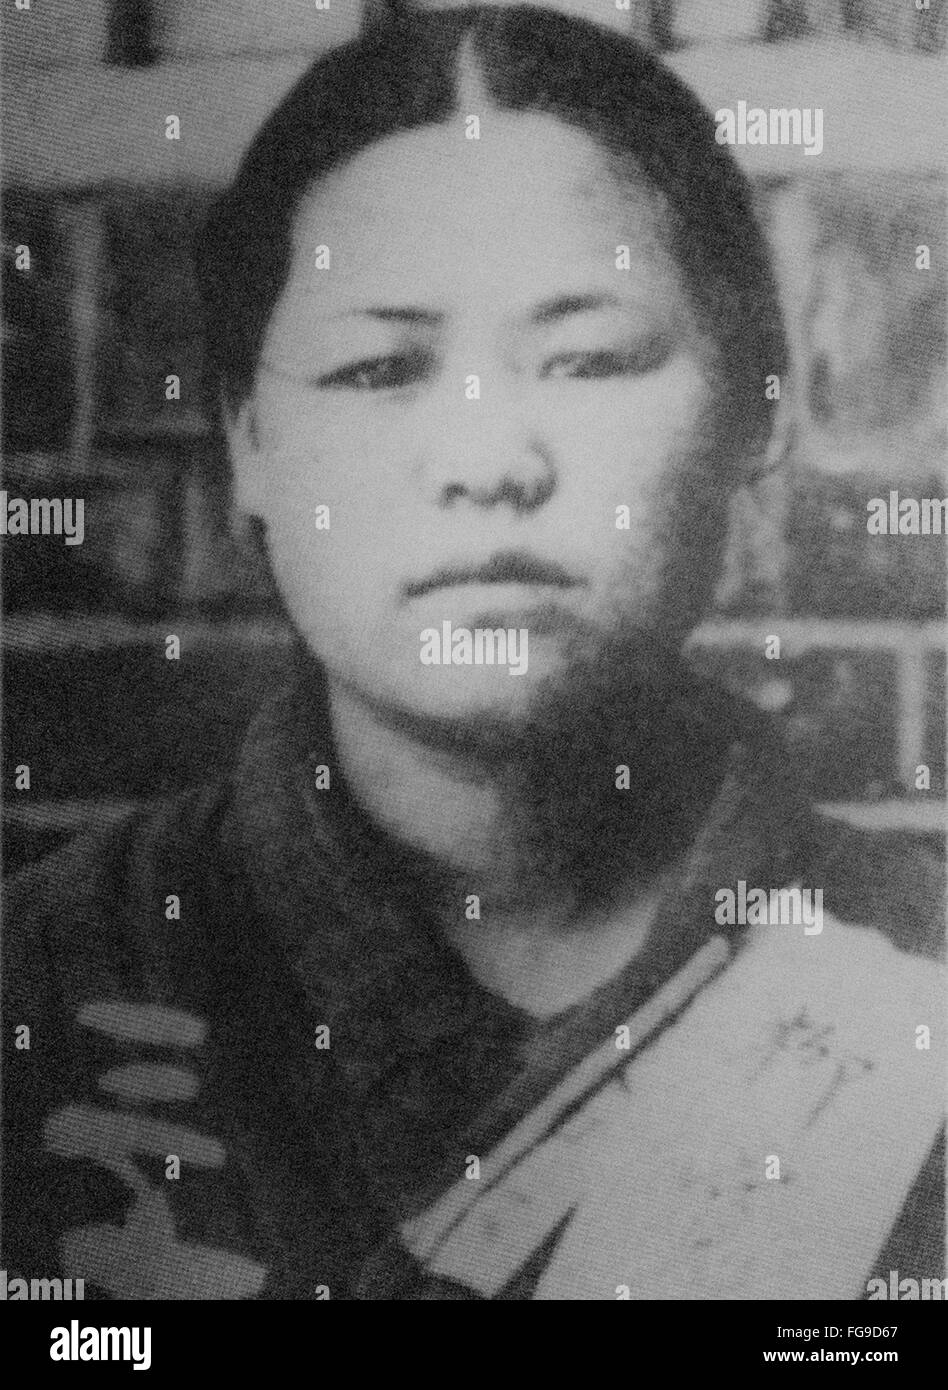 Portrait of Ryu Gwansun  (December 16, 1902 - September 28, 1920) - Stock Image